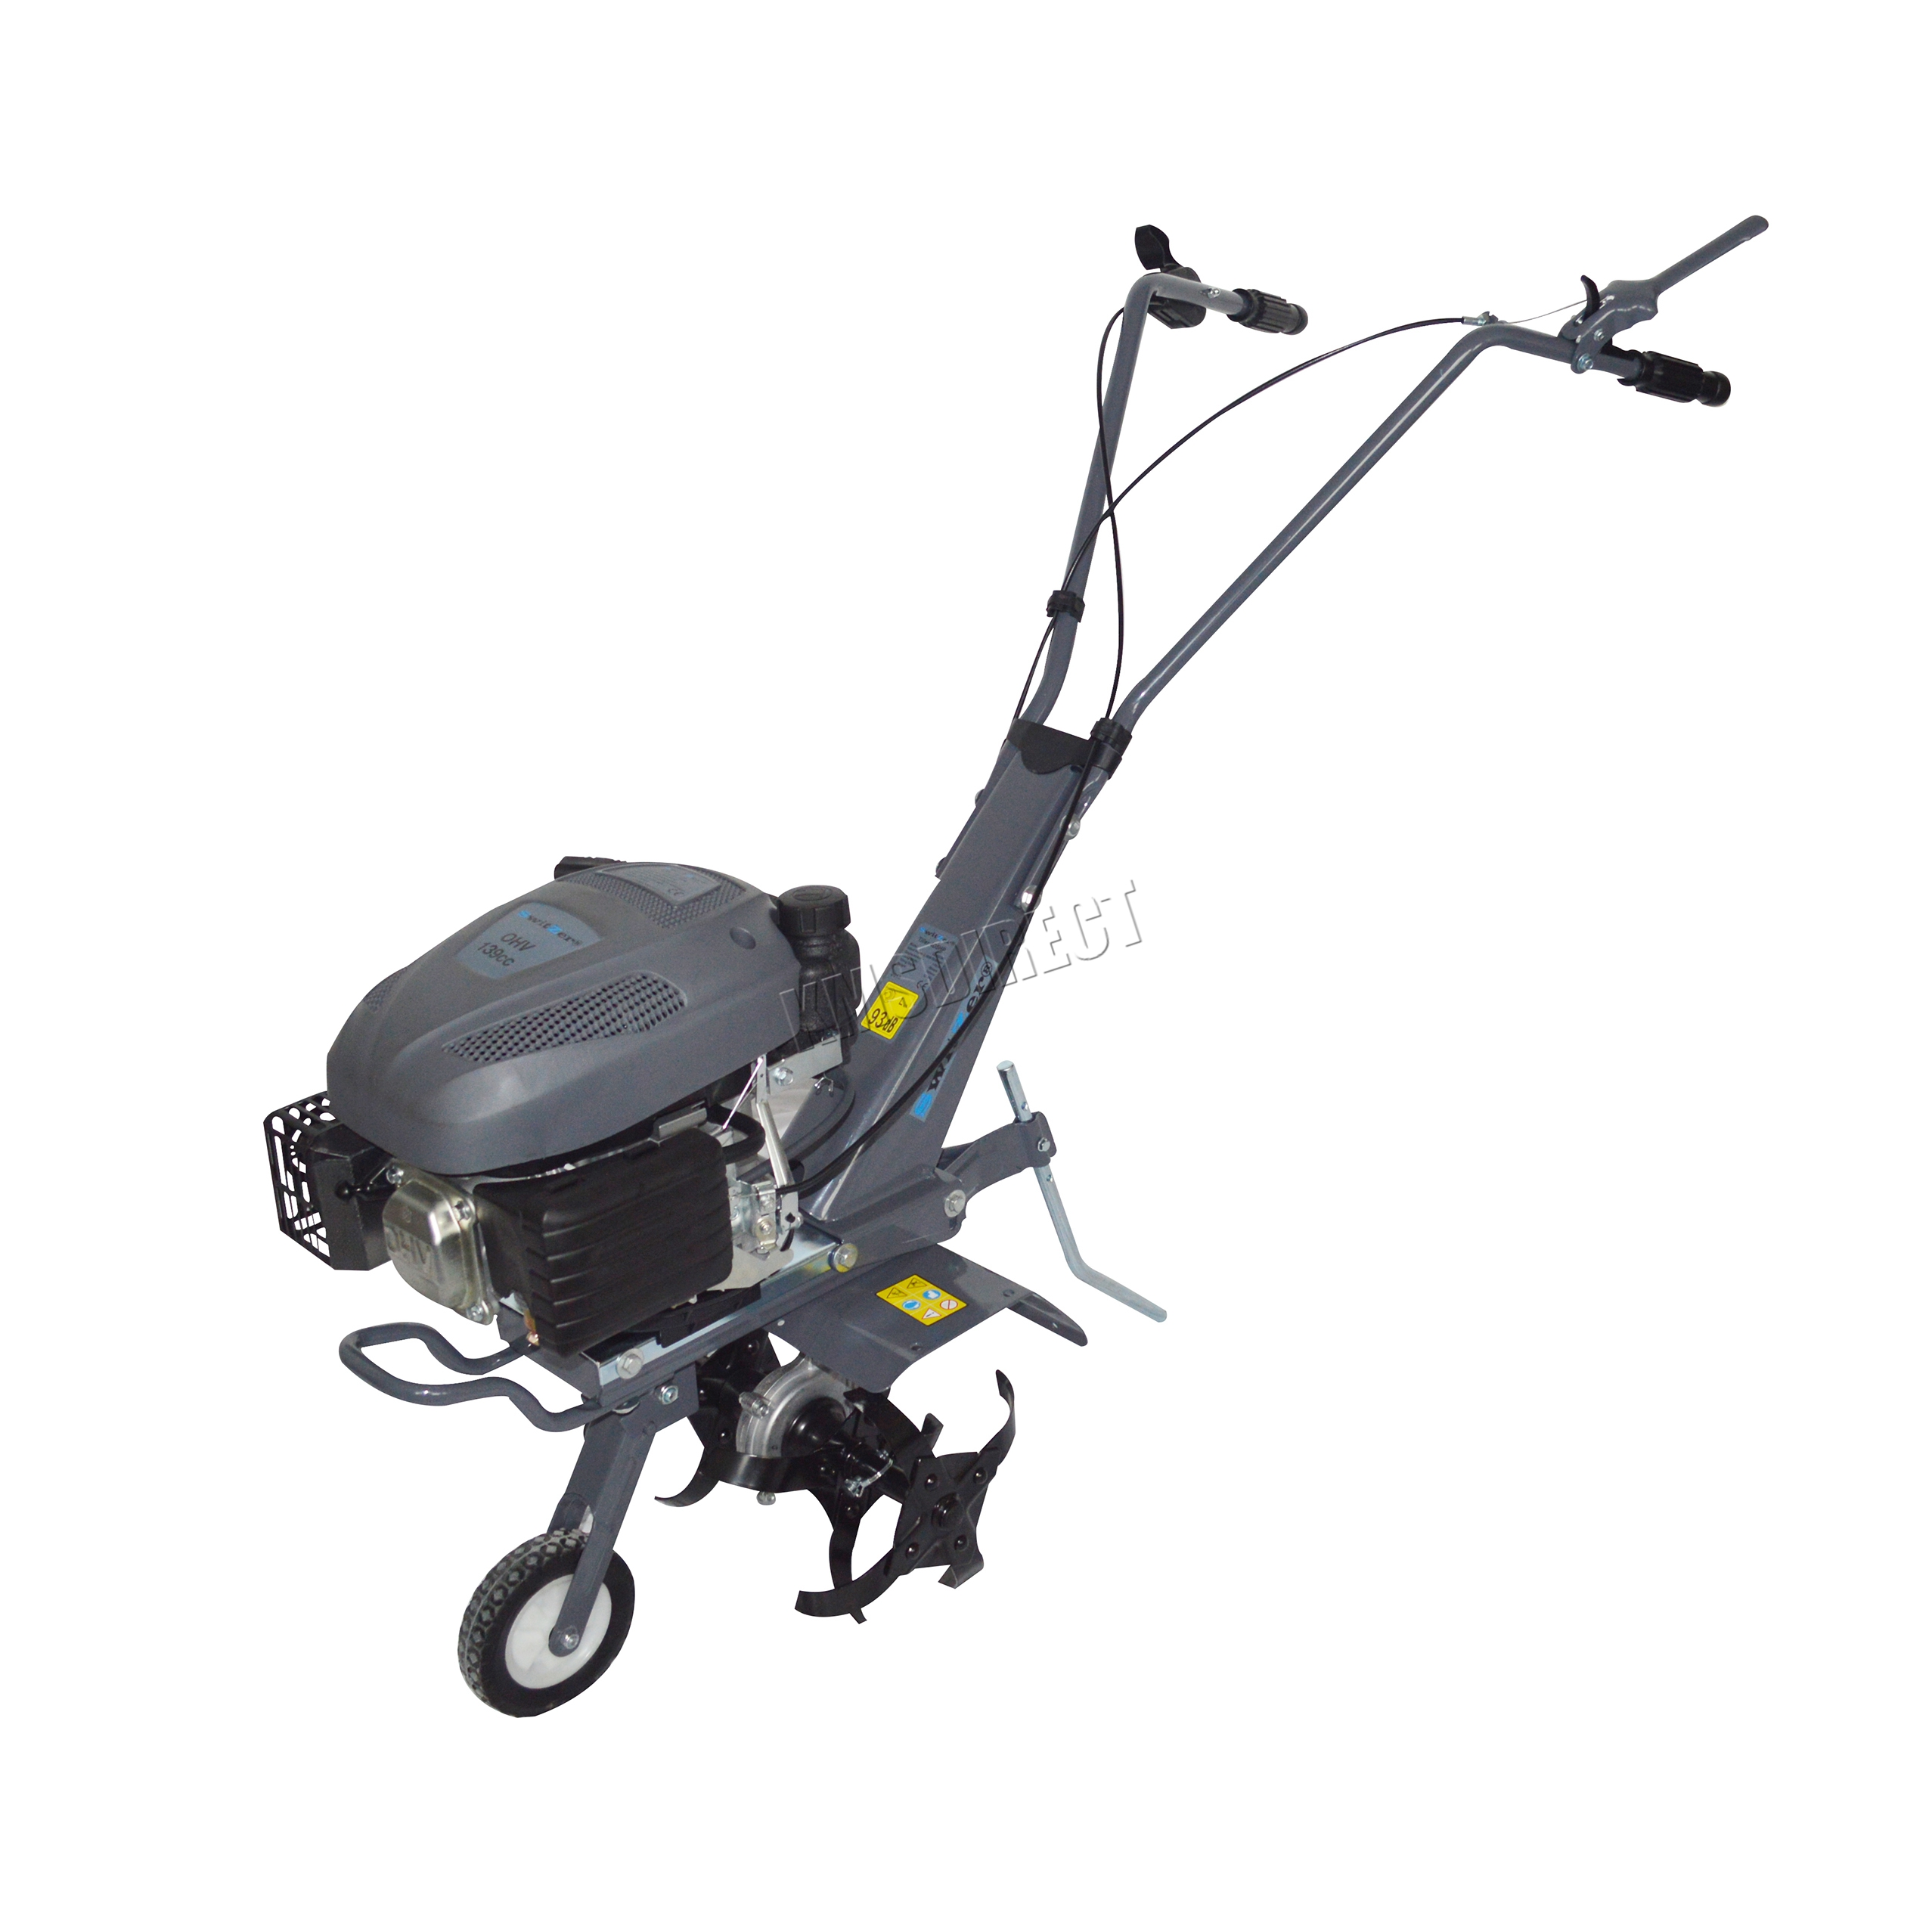 garden cultivator mantis hei qlt wid mini gas p sale cycle for tiller prod